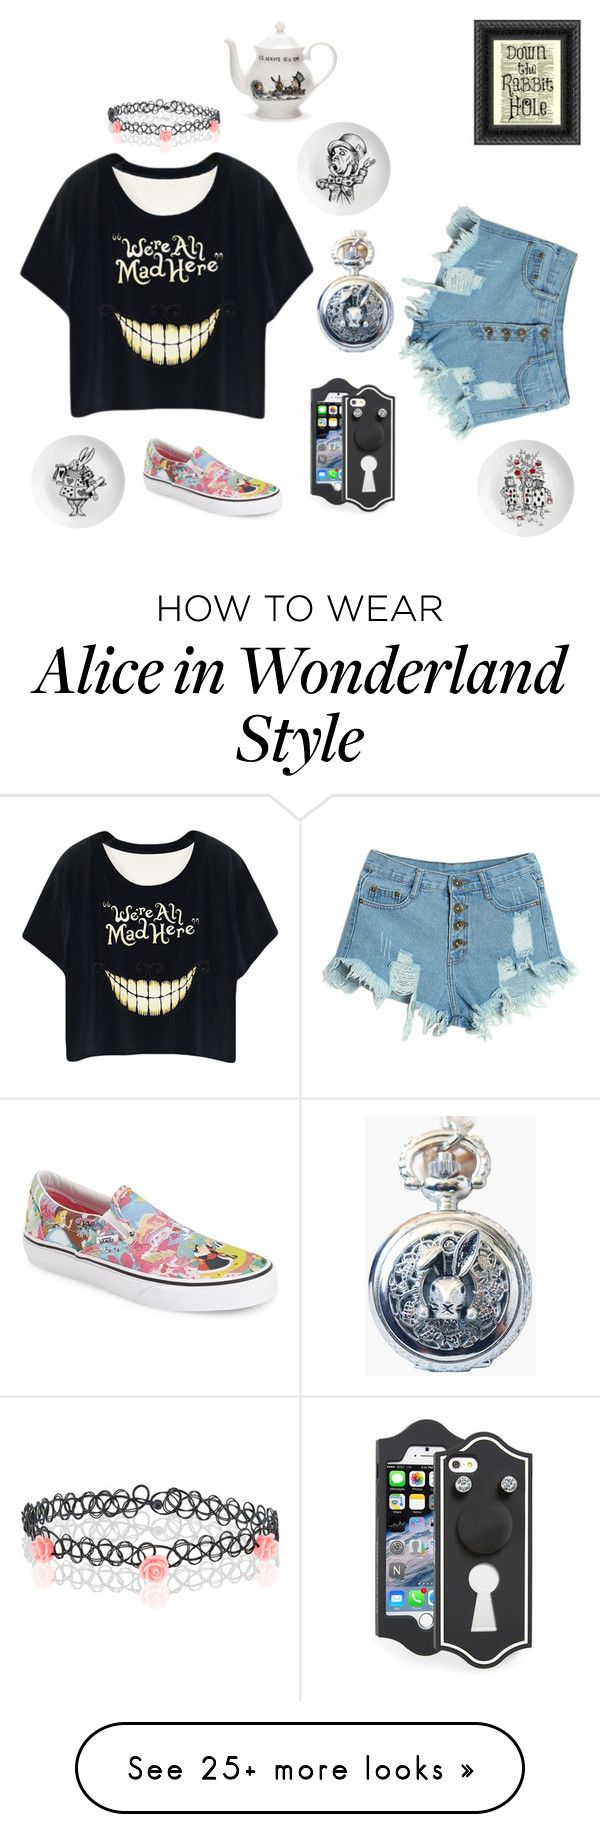 """Alice in Wonderland"" by lissadzen on Polyvore featuring Monsoon, WithChic, Marc by Marc Jacobs, Eleanor Stuart, Vans, Mrs Moore's Vintage Store, women's clothing, women, female and woman"